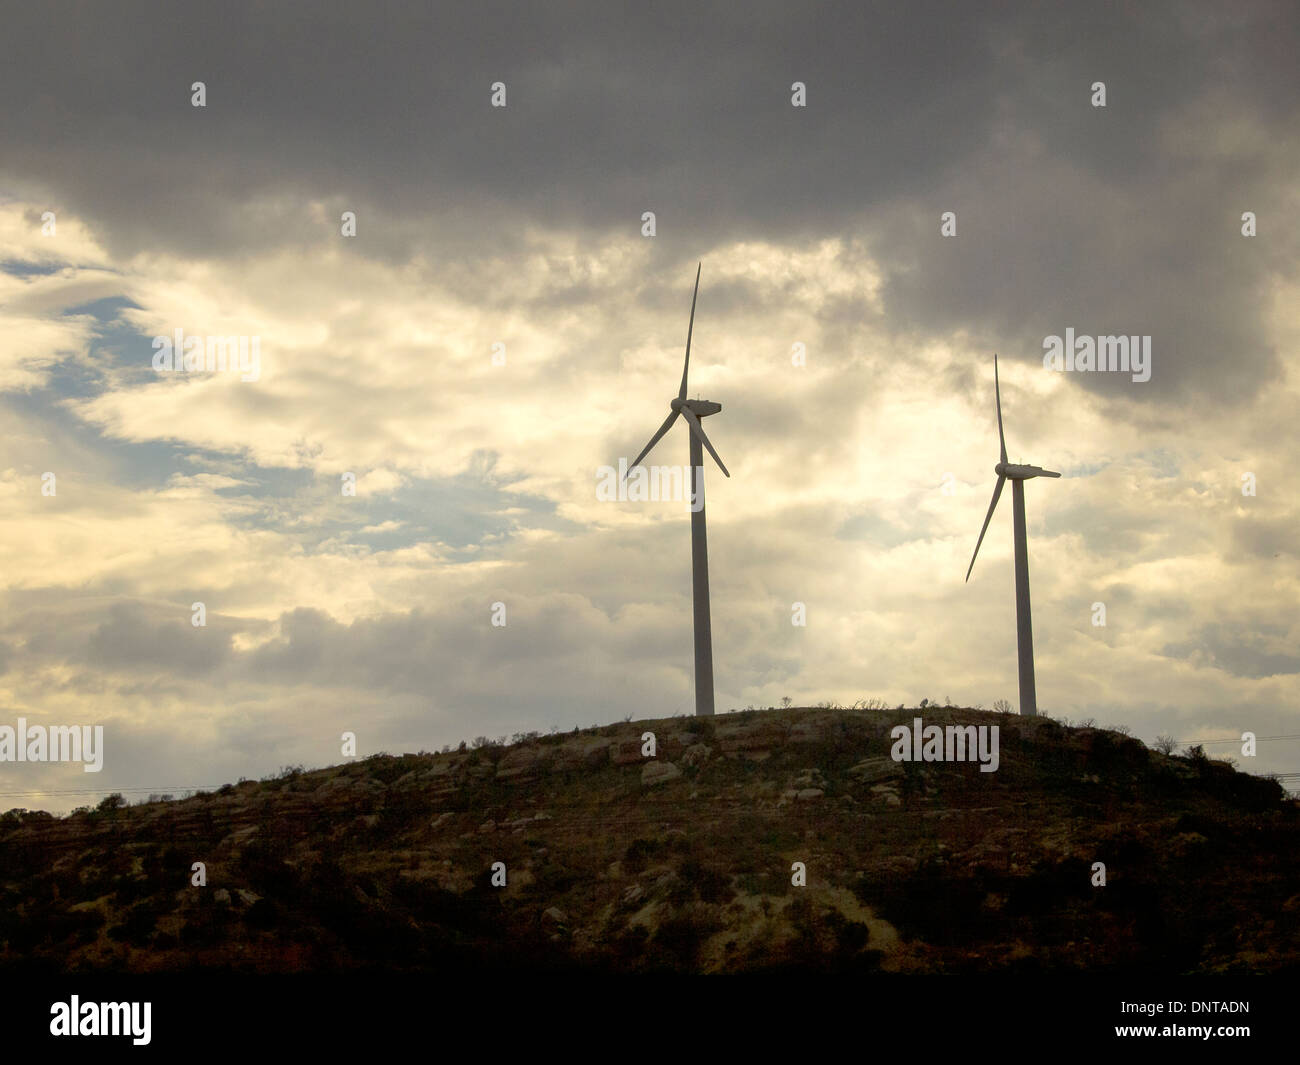 Wind turbines sit on hill in west Texas and face stormy weather as new discovery of fossil fuel competes with renewable energy. - Stock Image